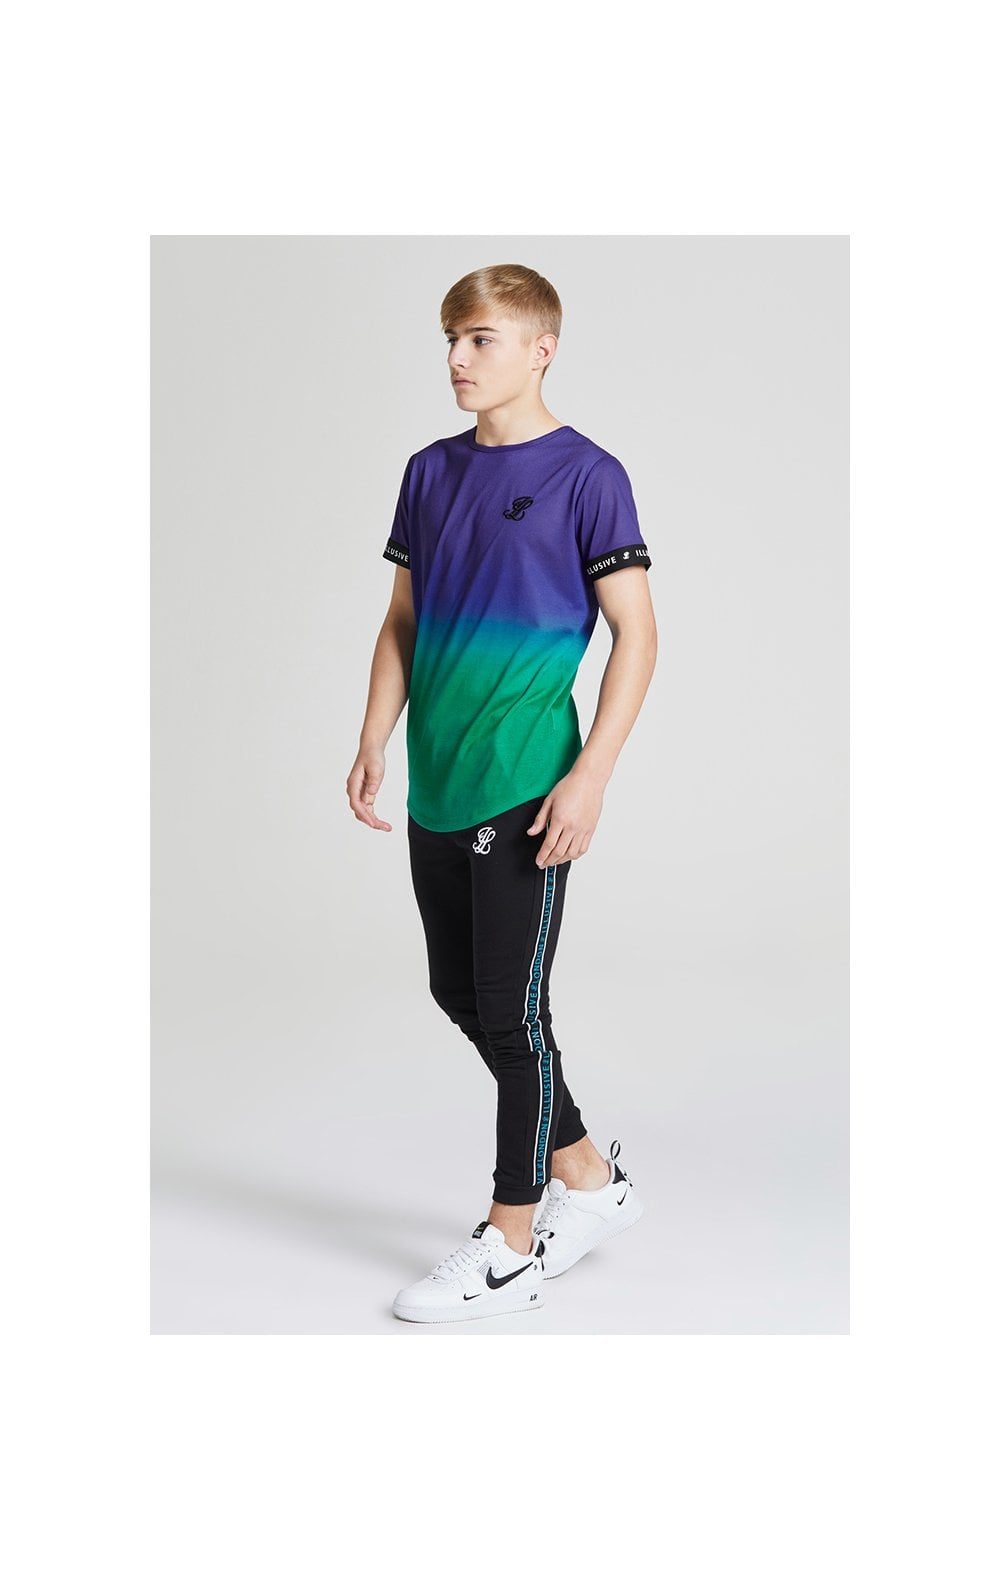 Load image into Gallery viewer, Illusive London Fade Tech Tee - Purple & Teal Green (2)